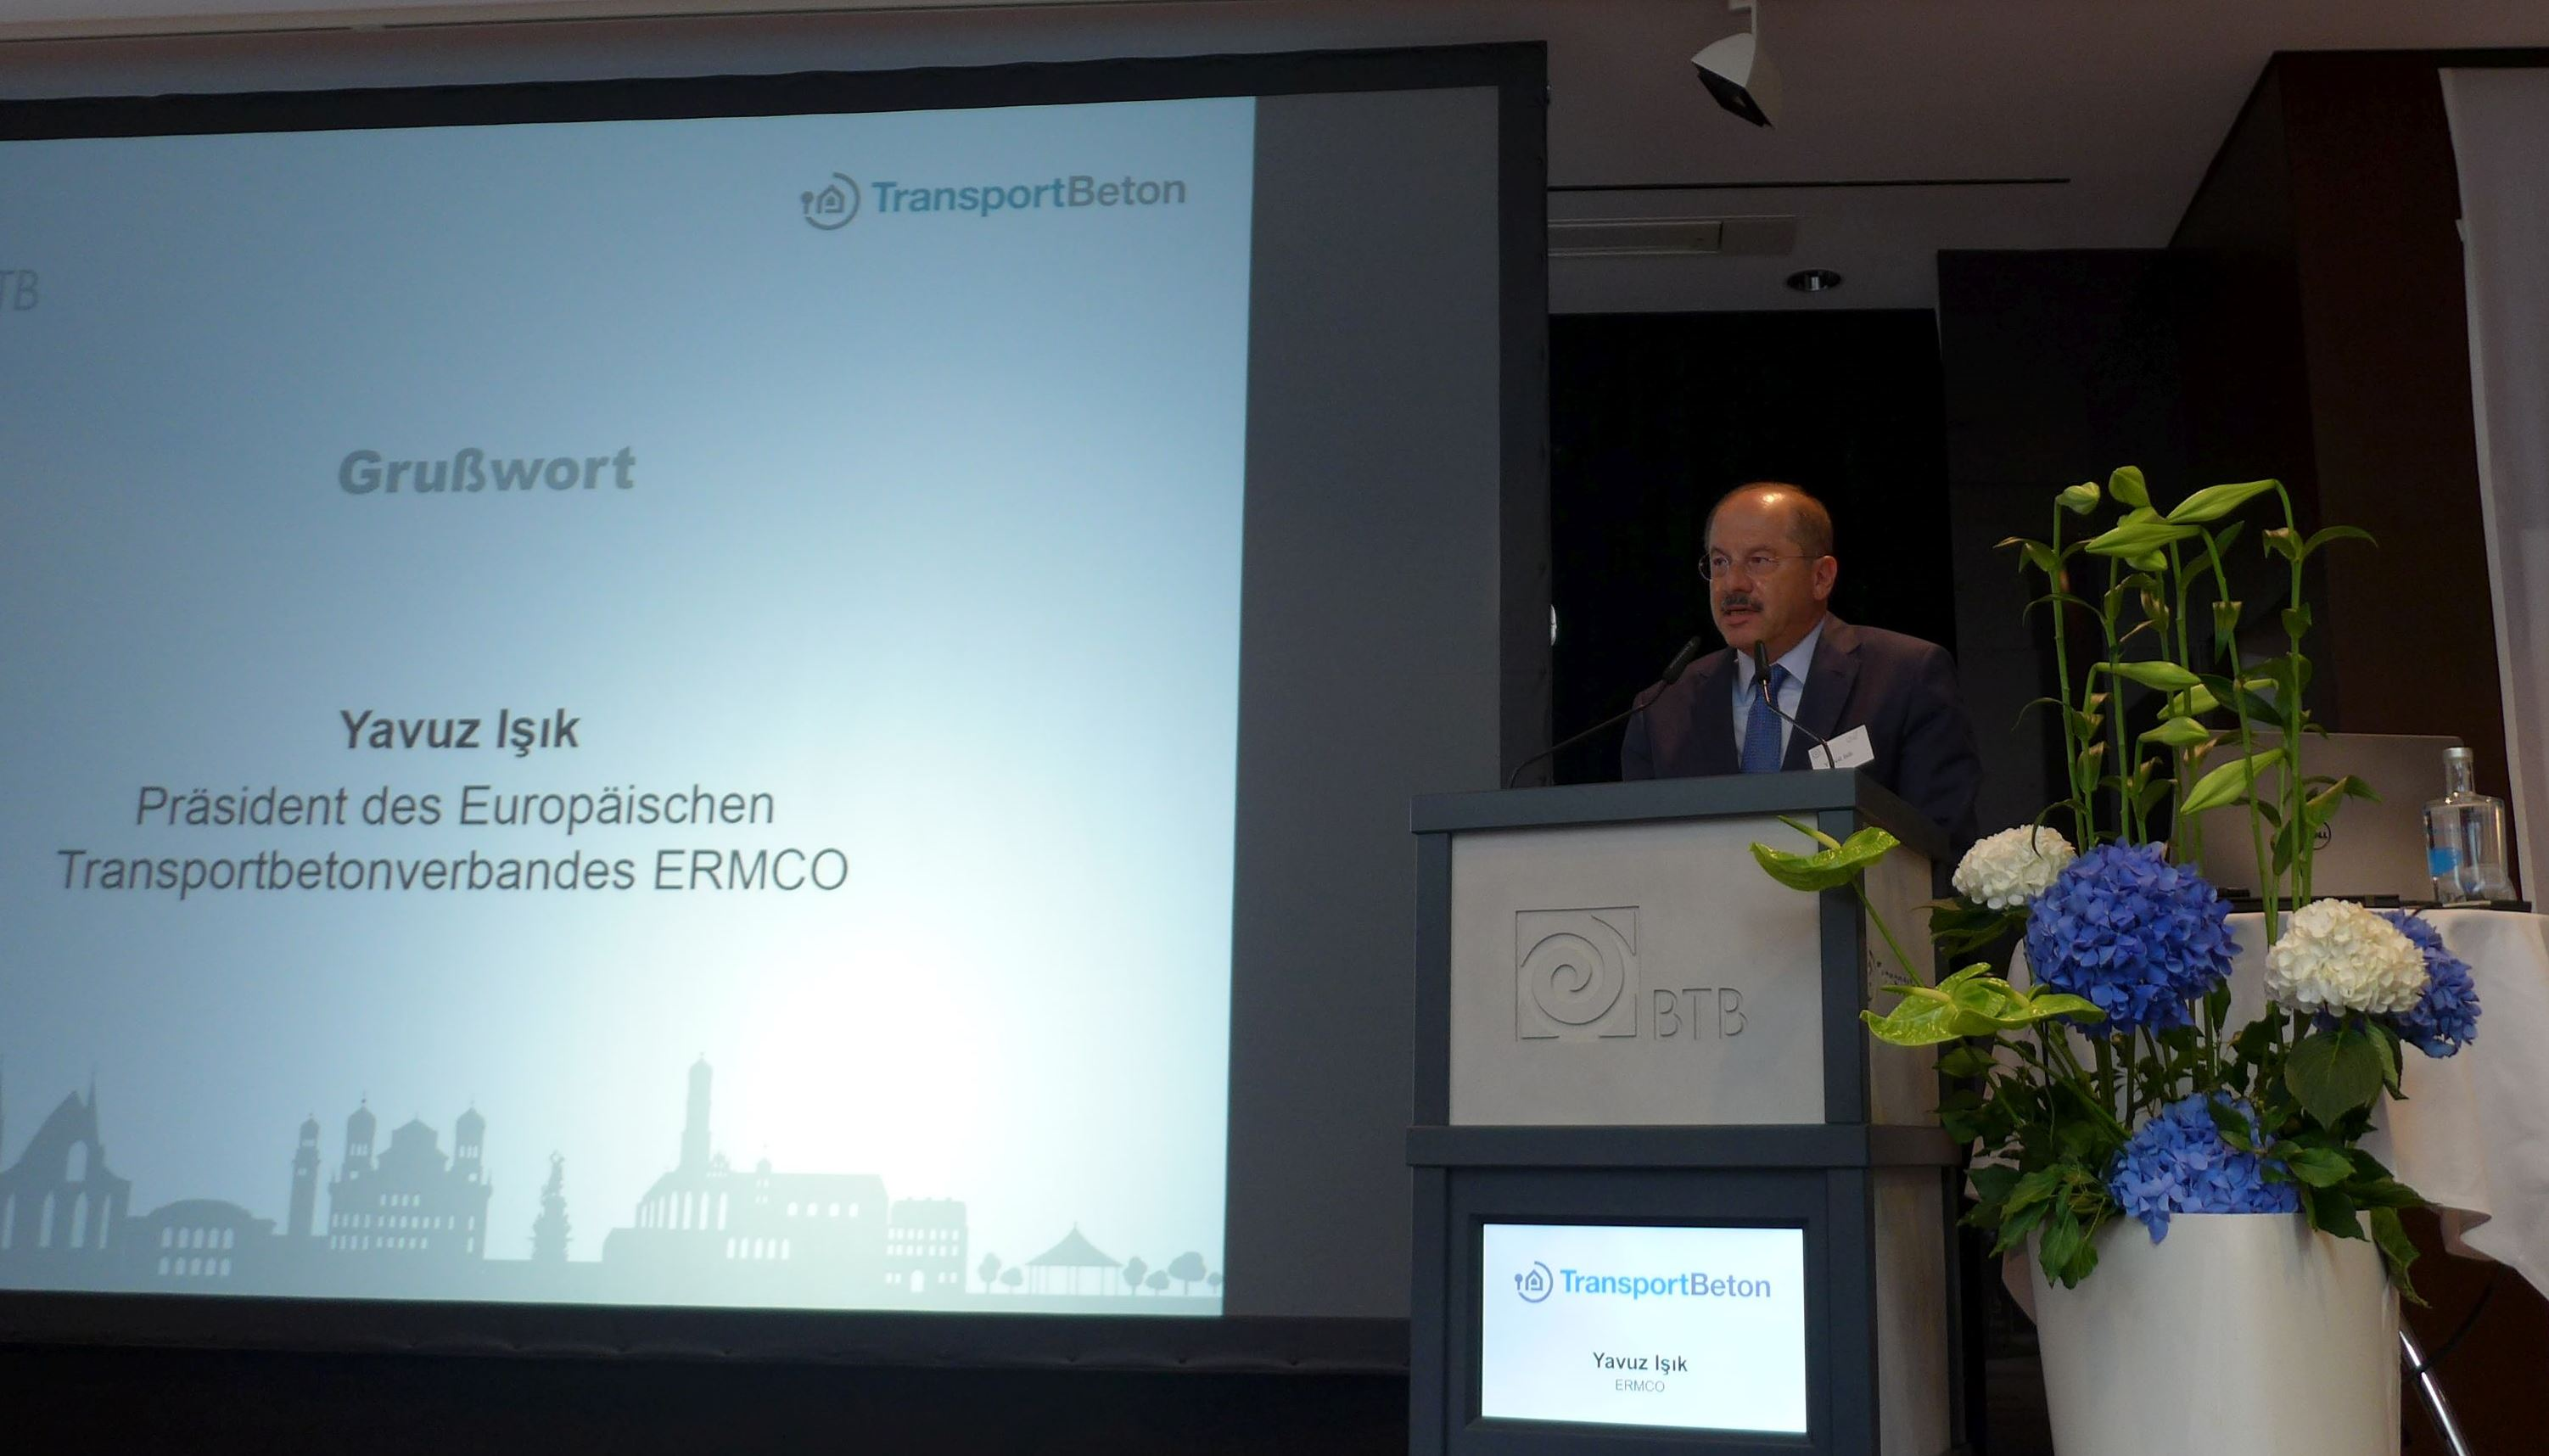 THE ERMCO PRESIDENT ATTENDS THE GERMAN CONCRETE DAY